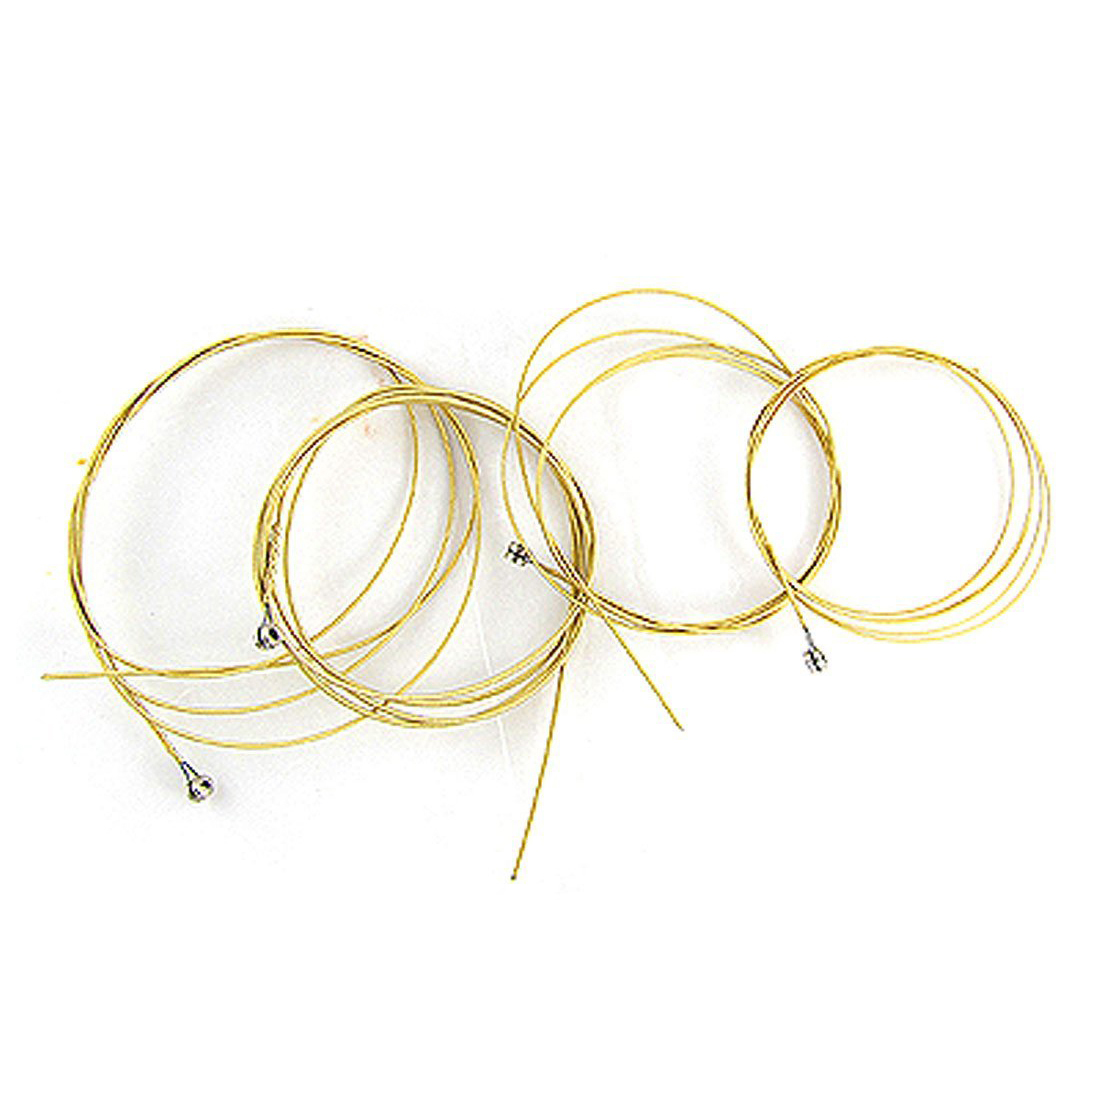 6 Pcs Steel Strings Replacement for Acoustic Guitar New Silver+Brass